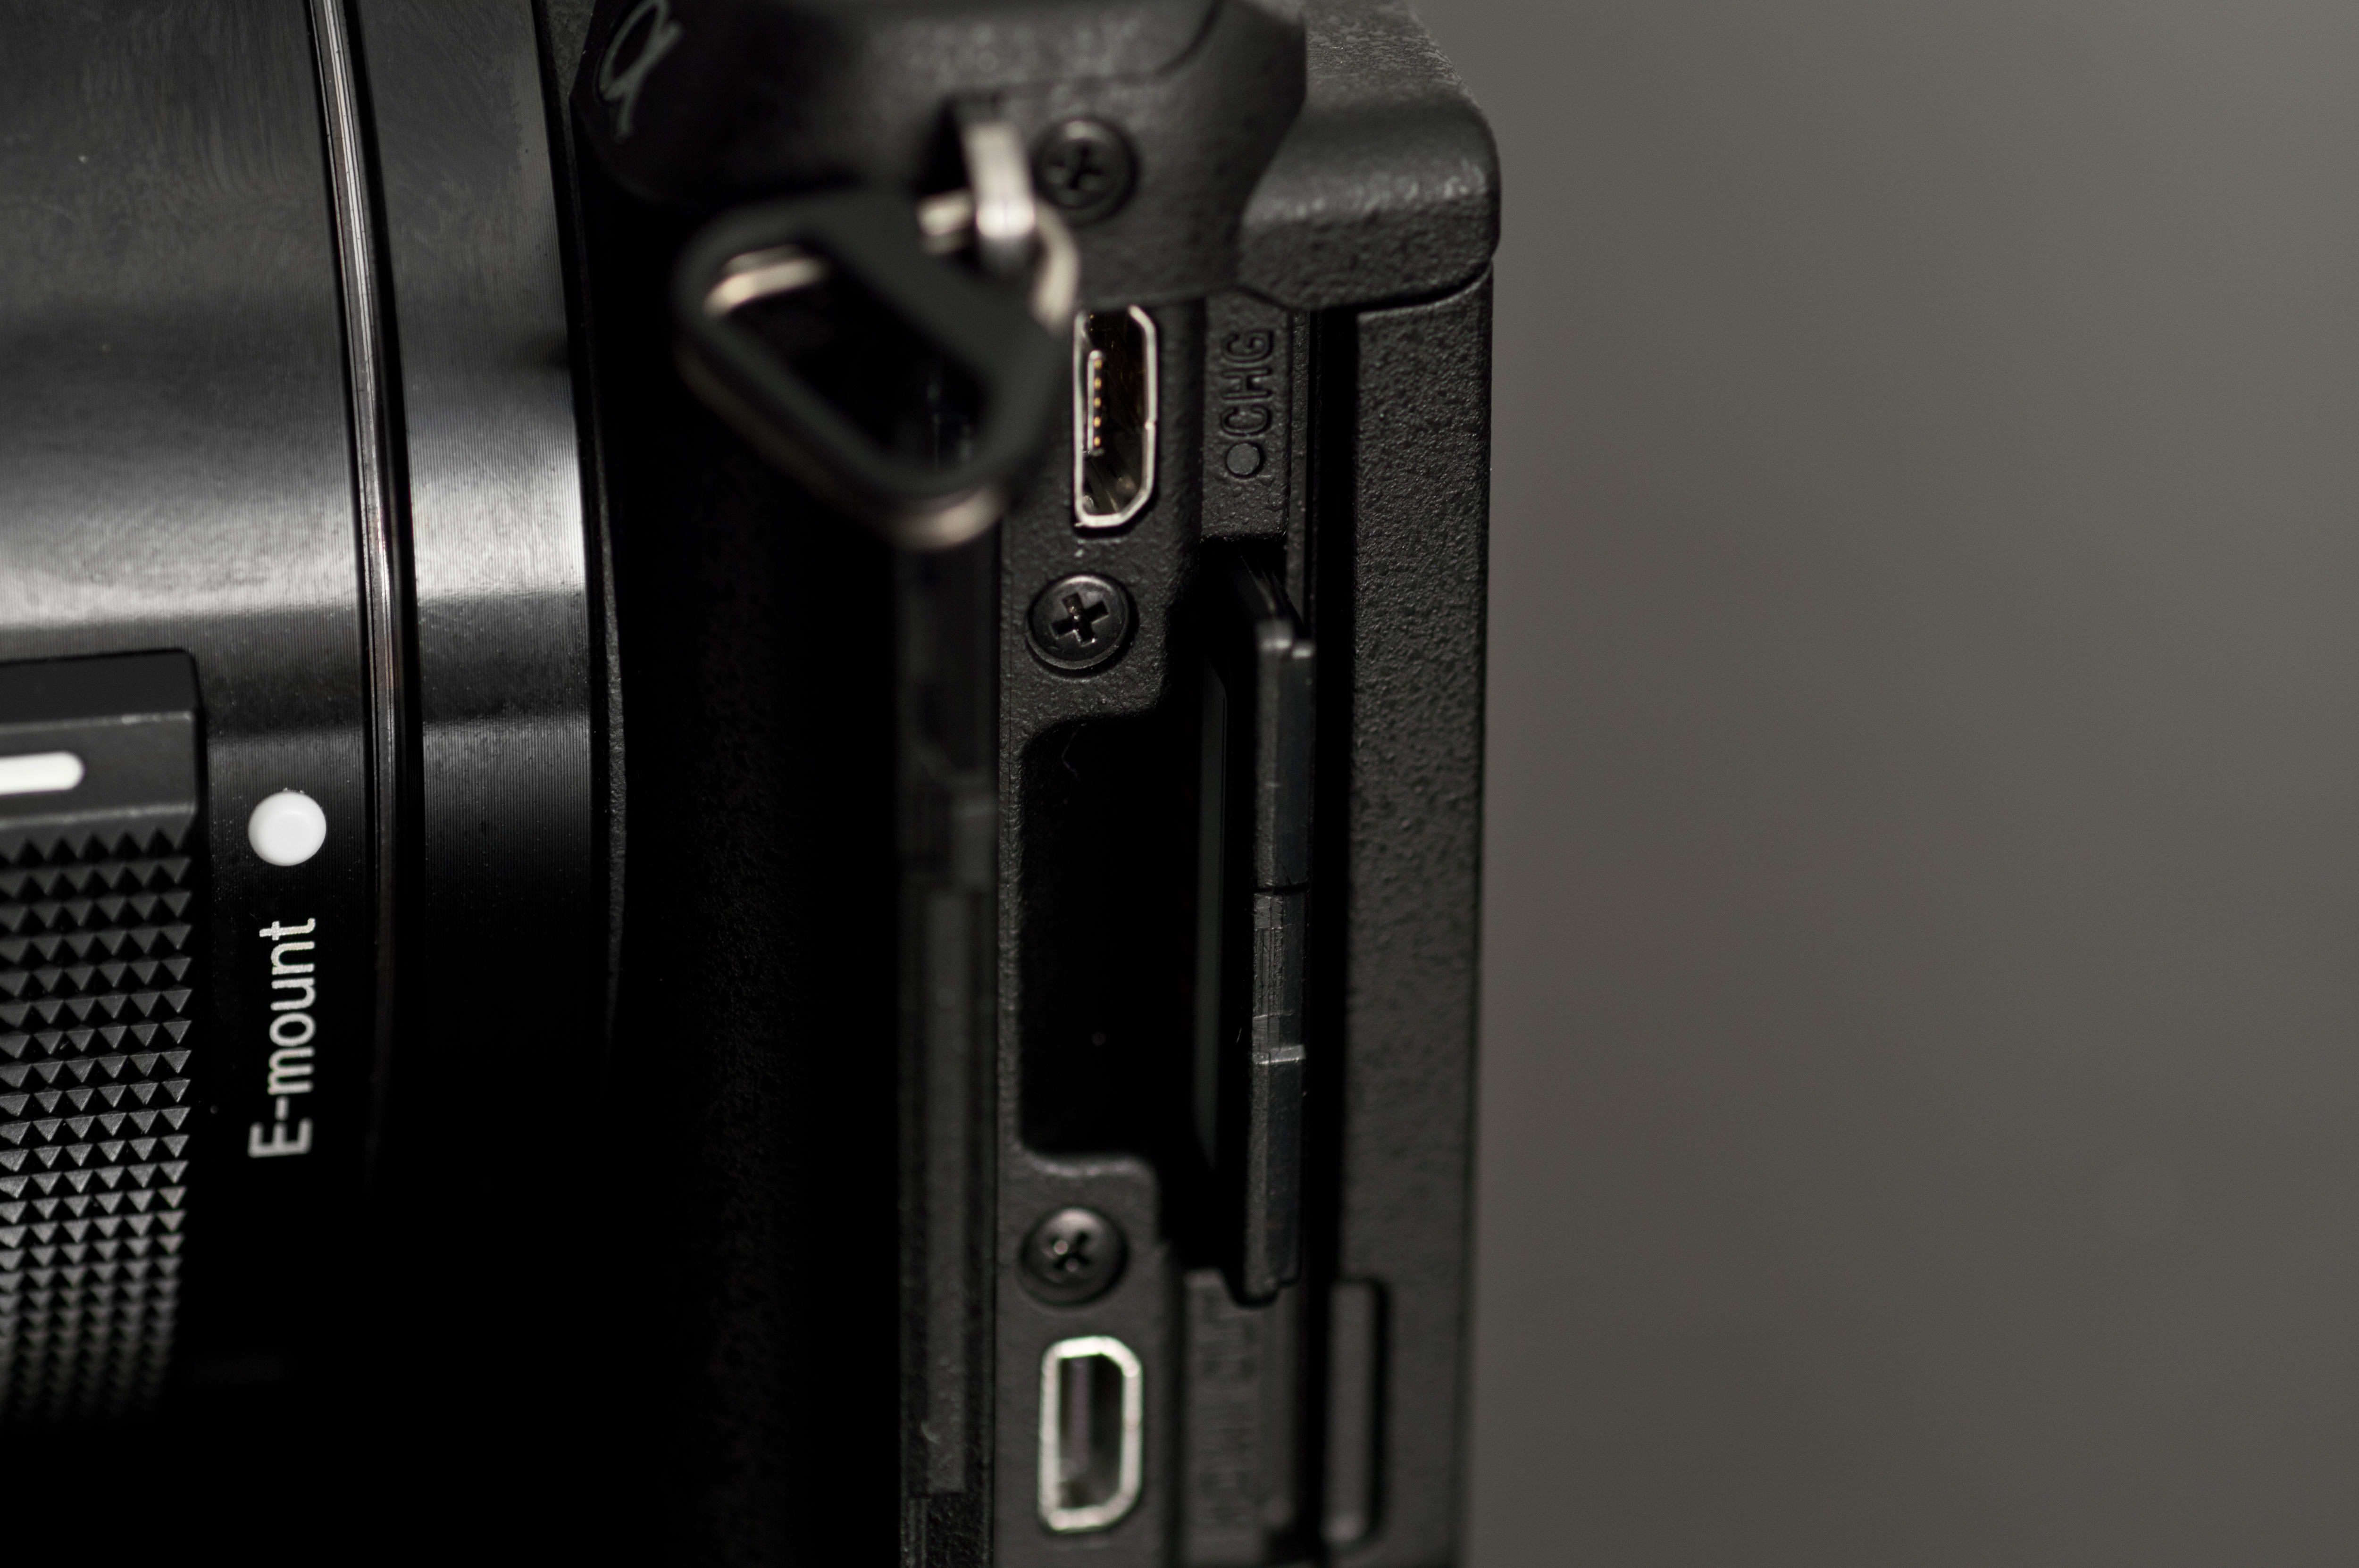 A shot of the HDMI, USB, and SD card slot on the A5100.